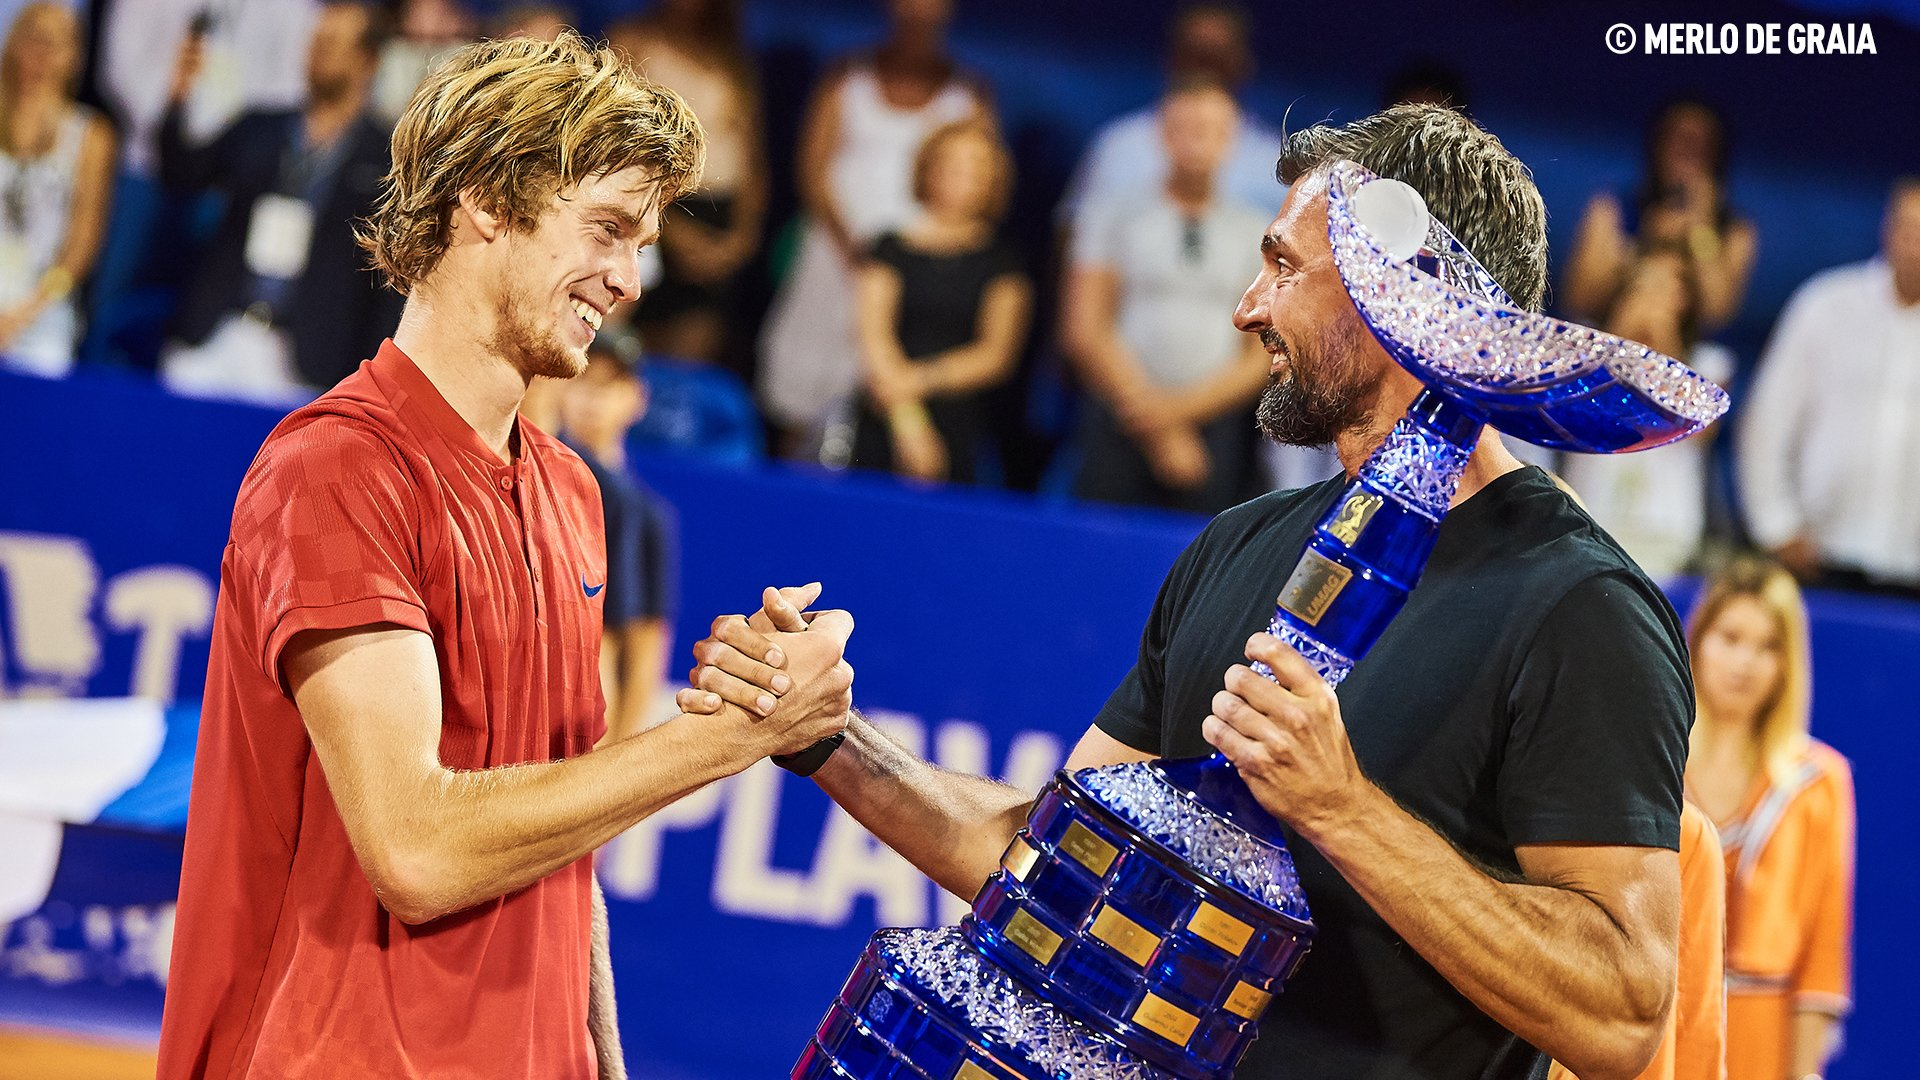 Rublev caps dream week at @CroatiaOpenUmag with first #ATP ��. More: https://t.co/252C445cEh #NextGenATP https://t.co/eskzUlg30P